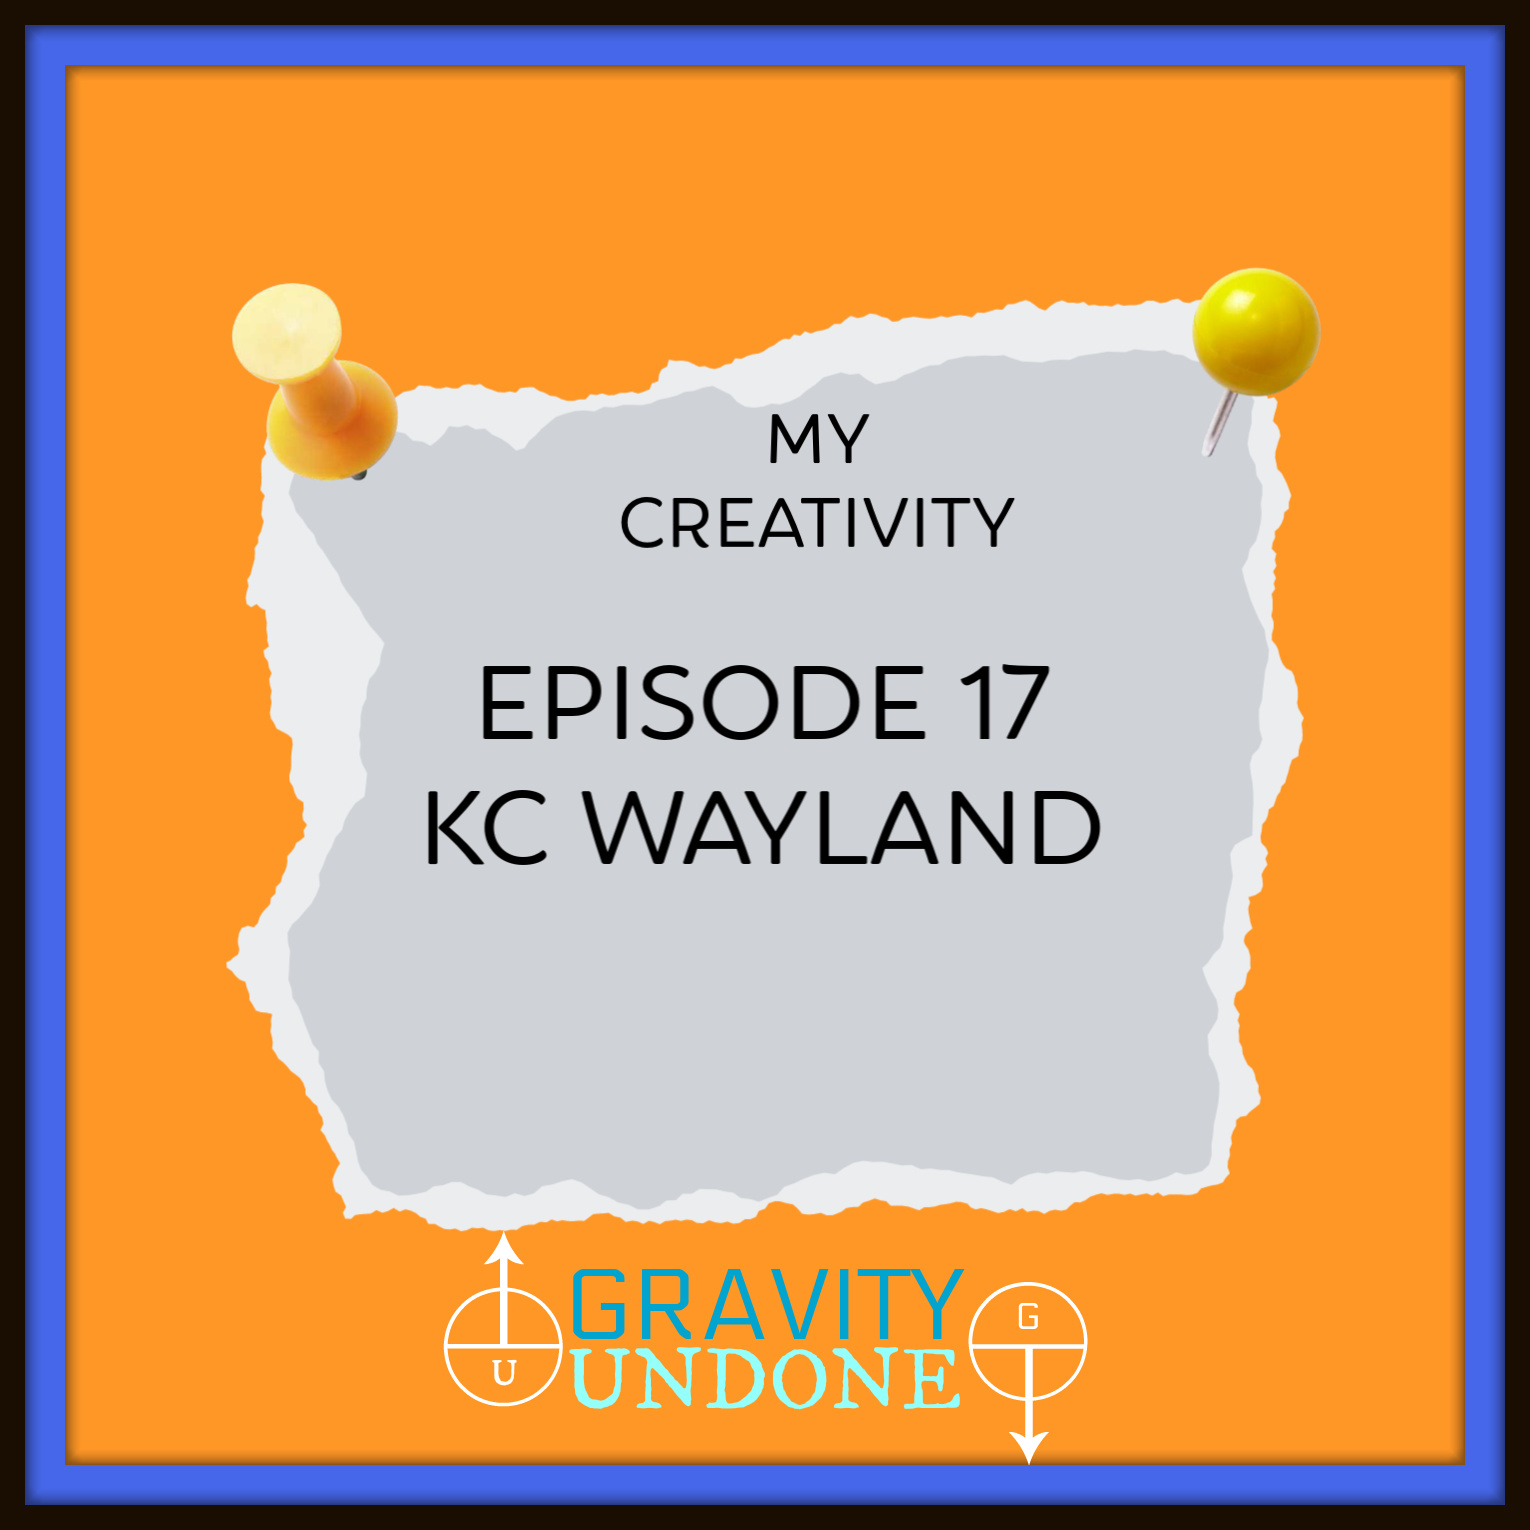 myCreativity - 17 - KC Wayland